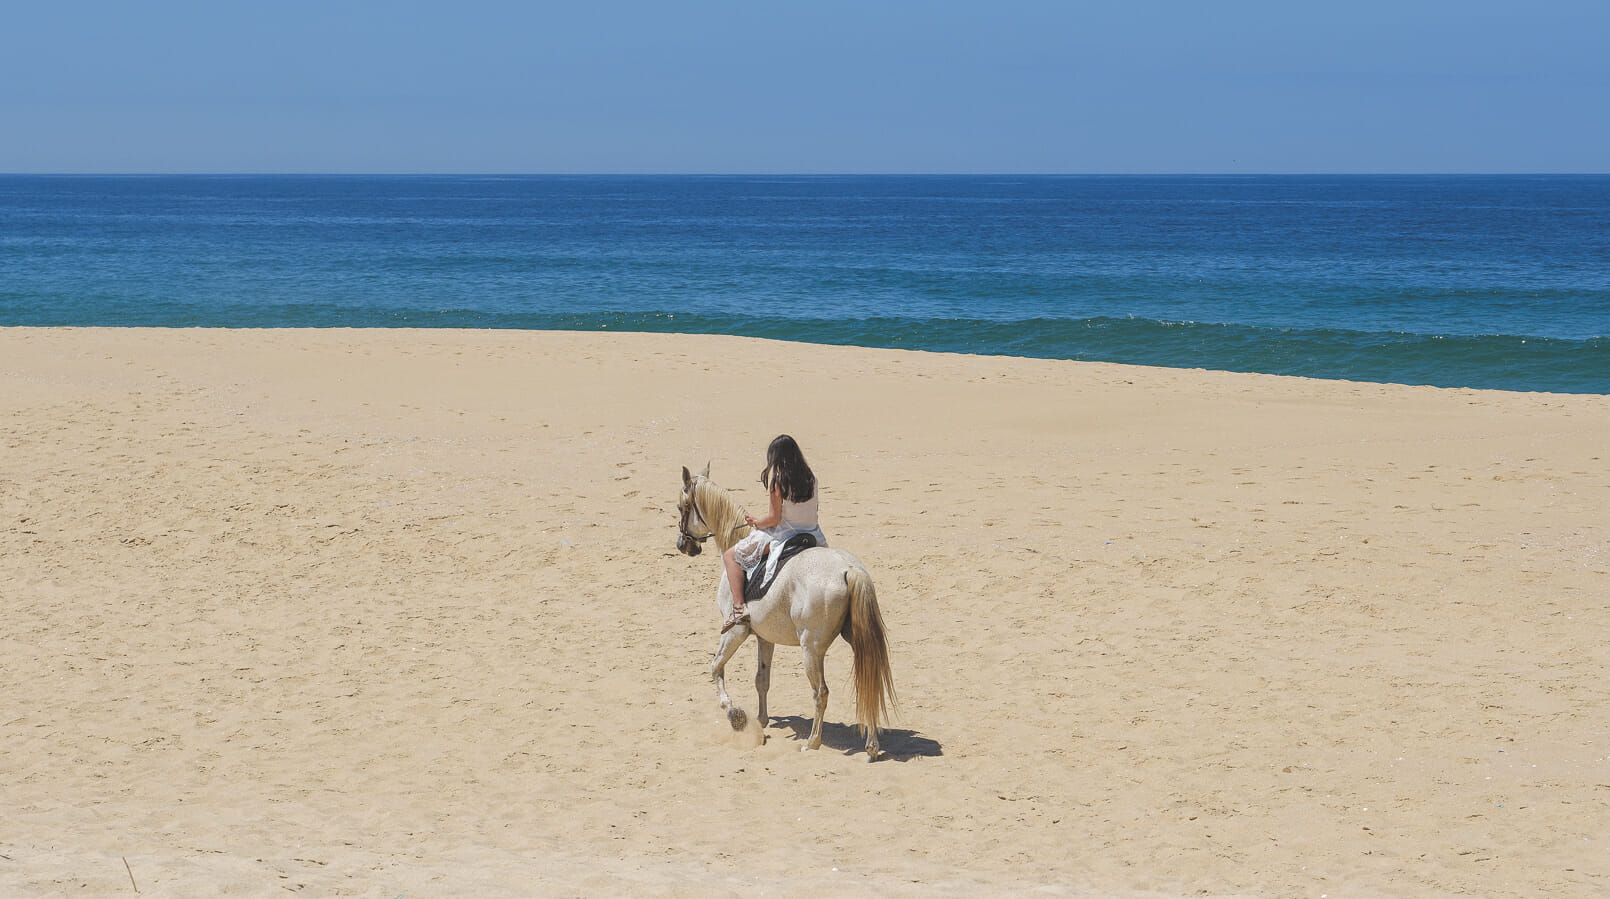 Le Fashionaire All you need to know about riding a horse at the beach in Portugal blogger catarine martins white horse ulisses beach sand sun sea blue 4079F EN